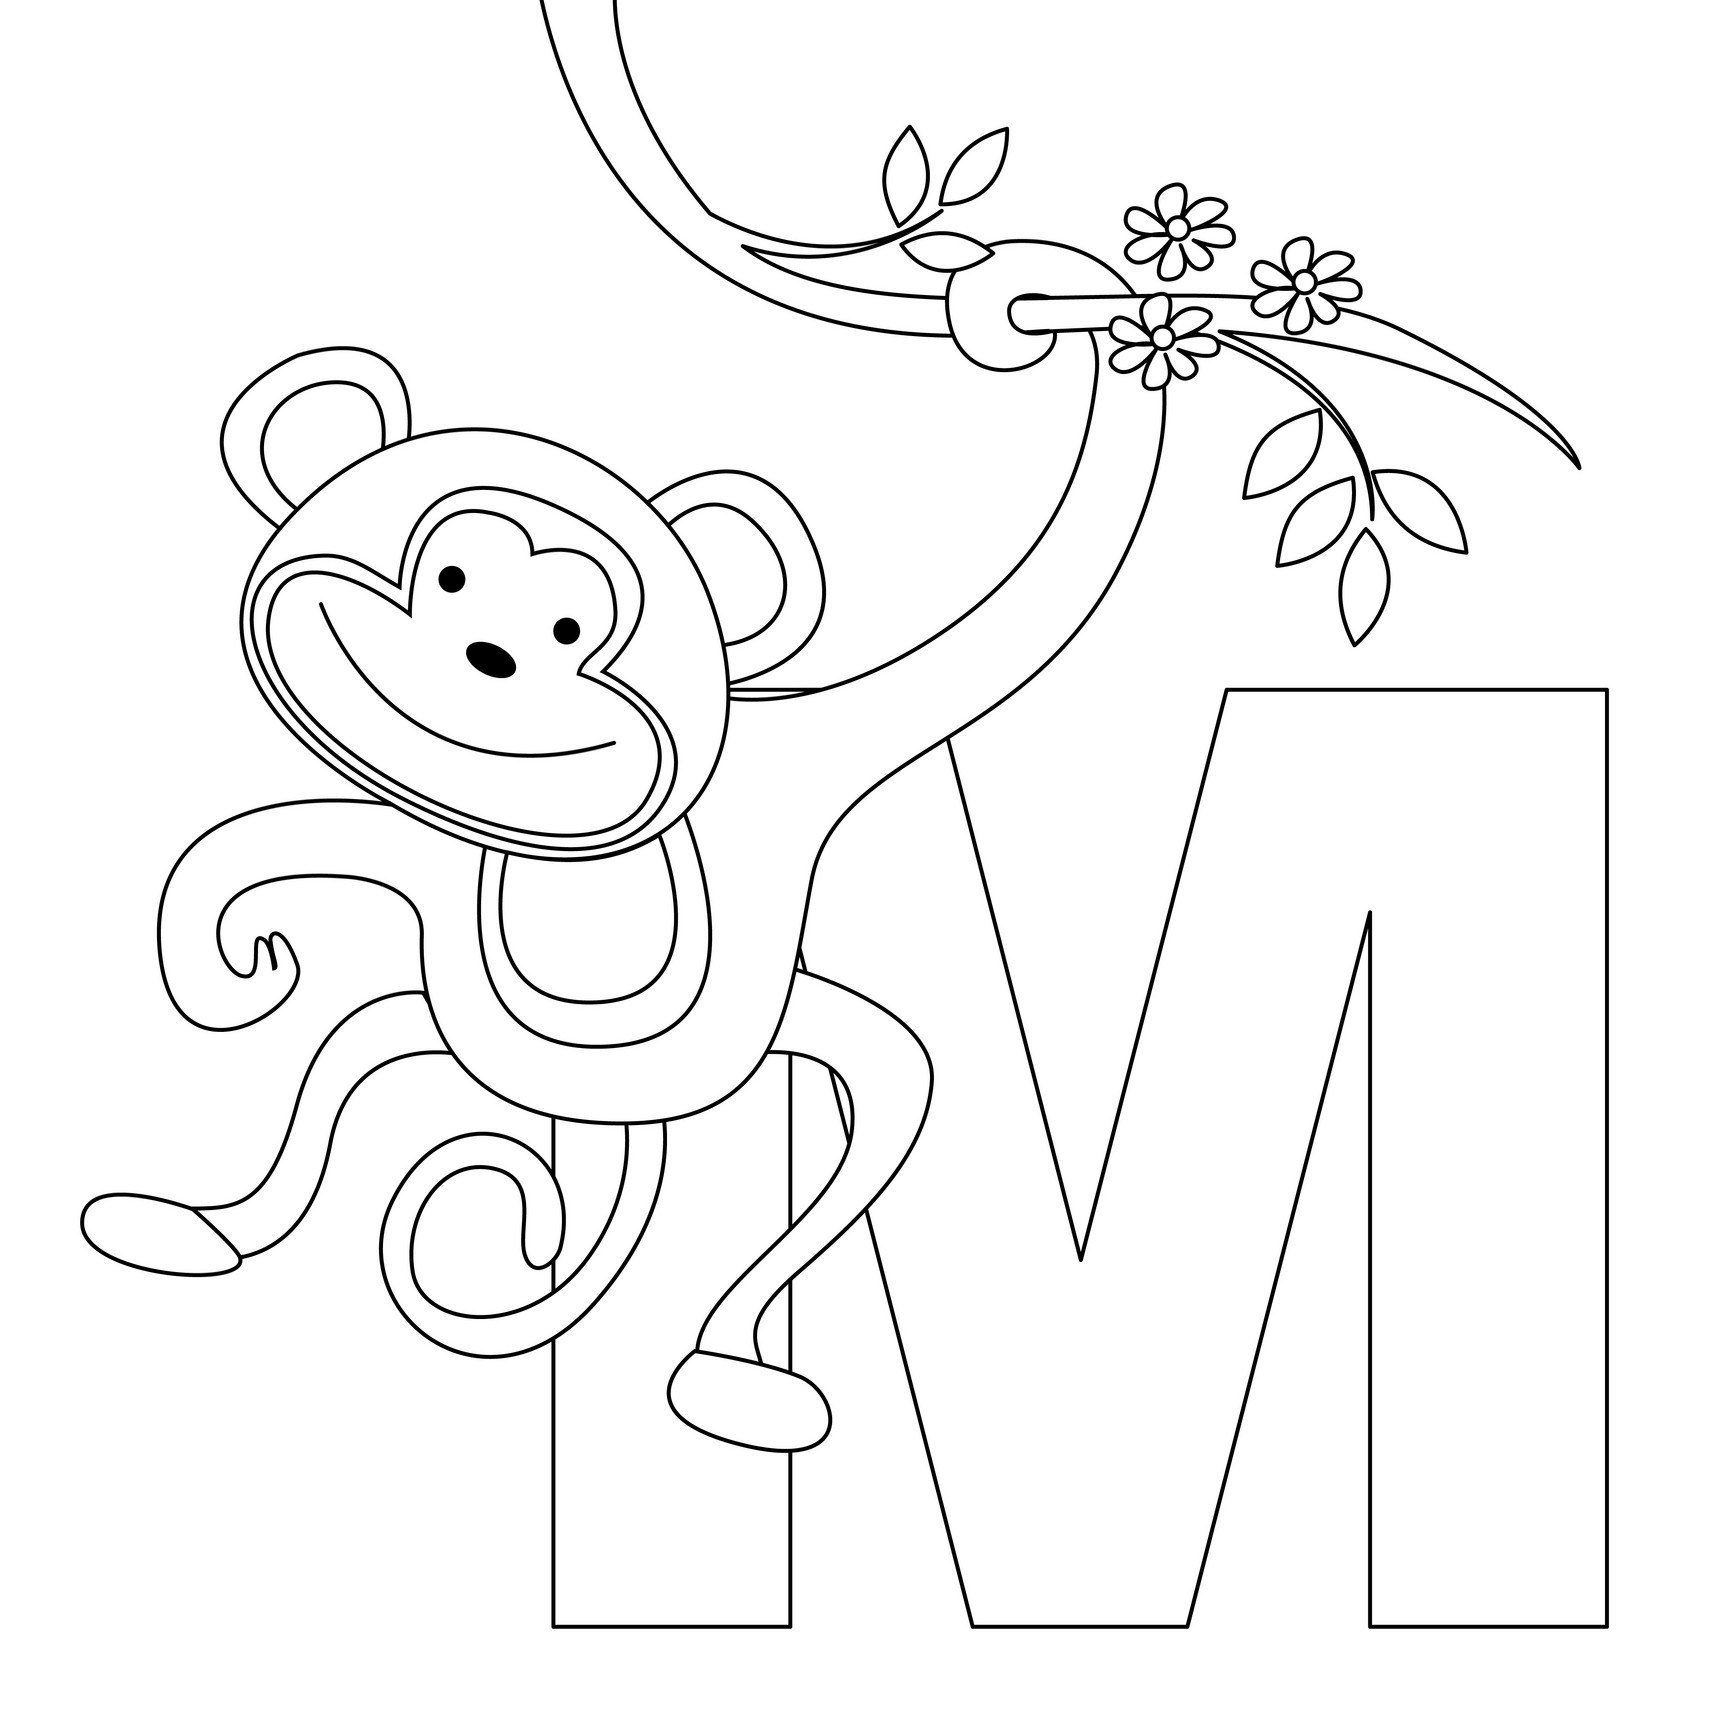 alfabet coloring pages - photo#16